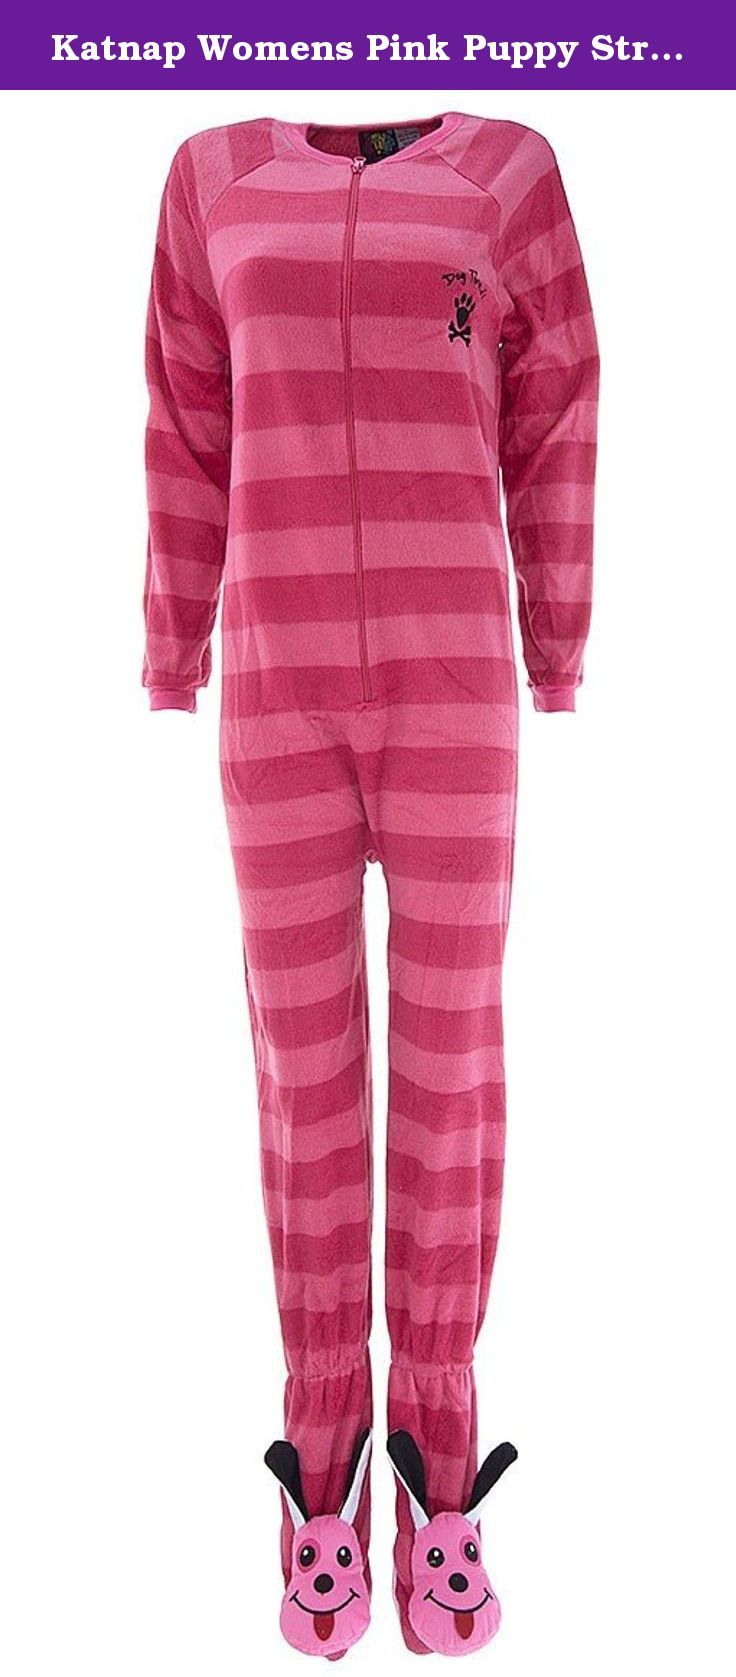 Katnap Womens Pink Puppy Striped Footed Pajamas M. These fleece, footed pajamas are made of warm micro polar fleece. They feature a fun, animal print. The brand is Katnap. They zip up the front. The soles of the feet have a non-skid finish.